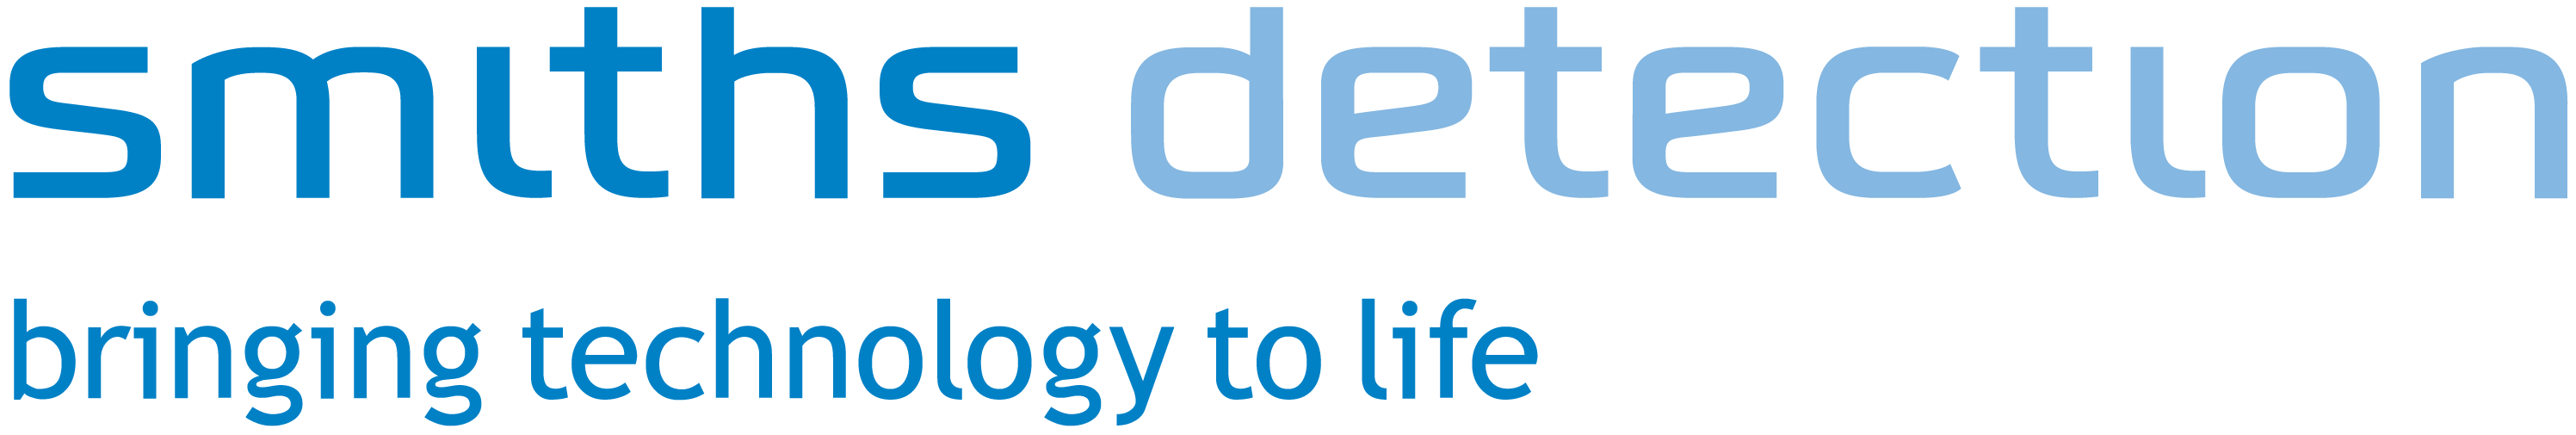 2017-06-30_SD logo blue with tagline-01.png